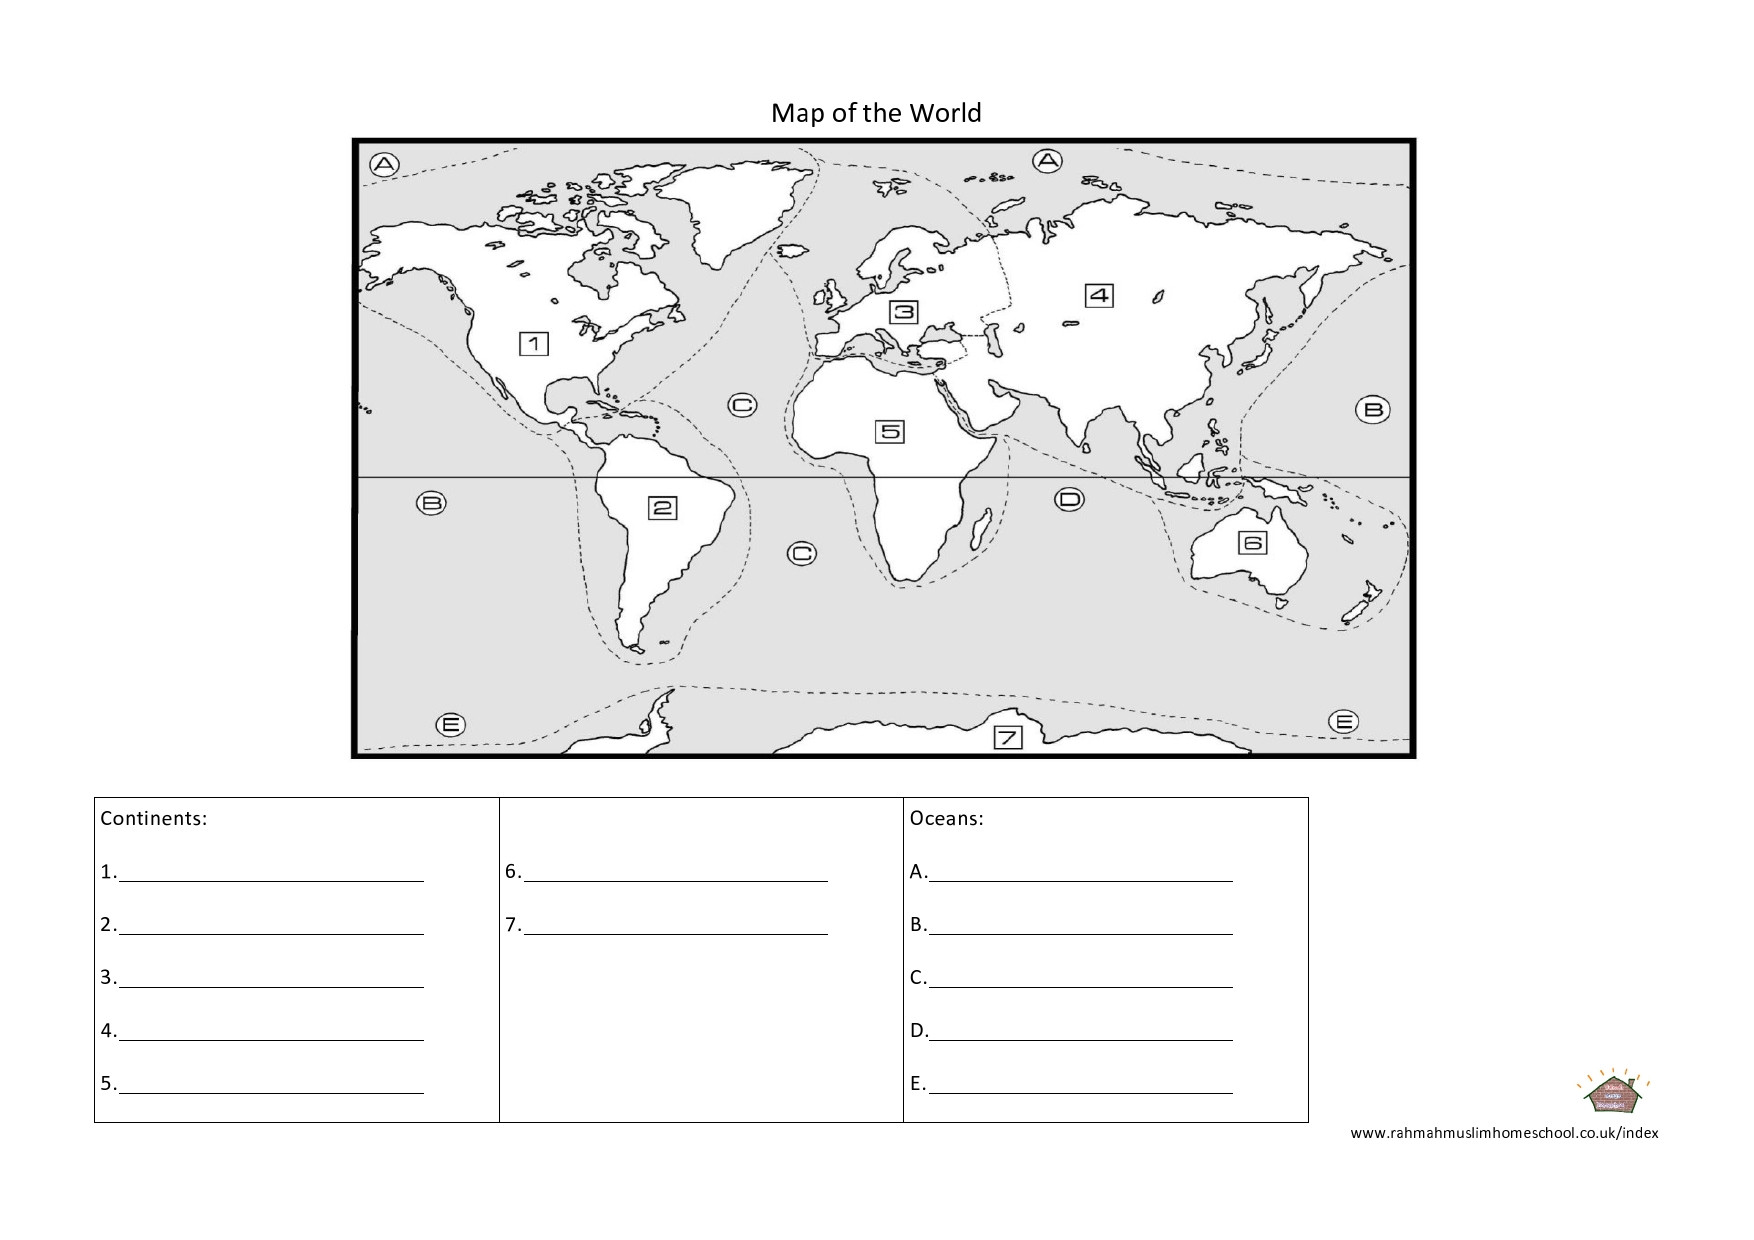 Continents and Oceans Worksheet Printable Geography Continents and Oceans Worksheet